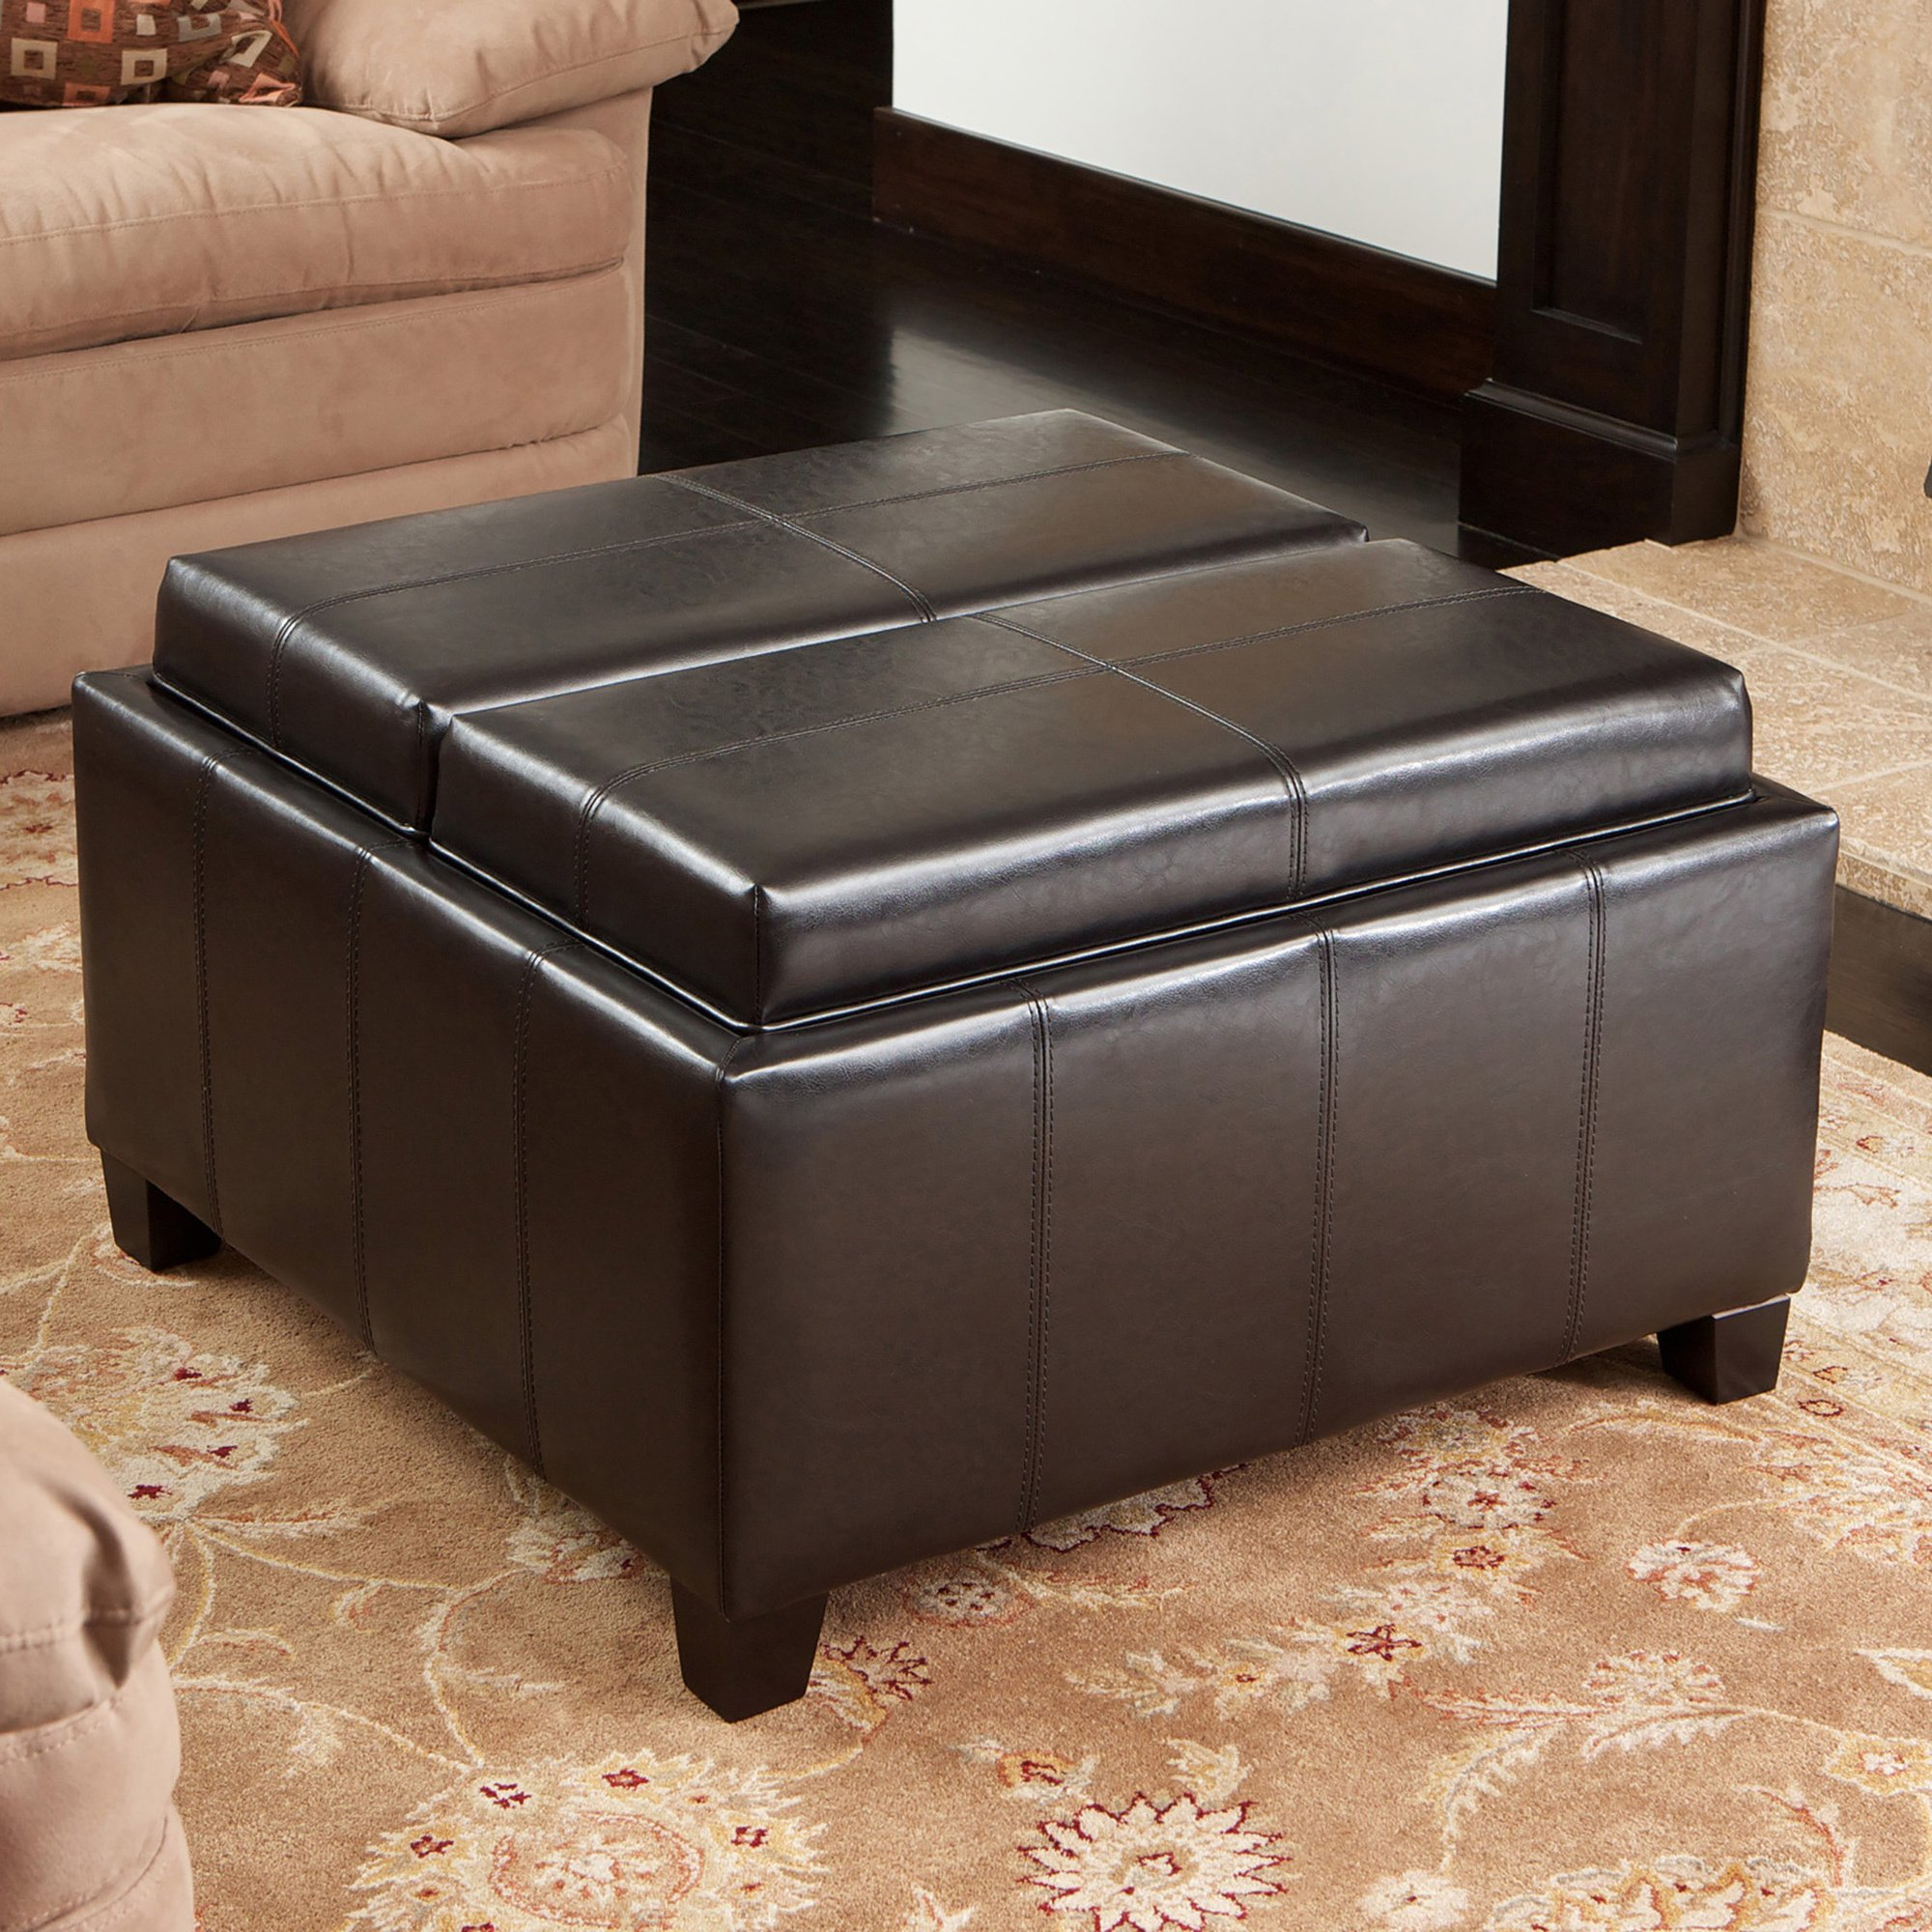 Shop Mansfield Bonded Leather Espresso Tray Top Storage Ottoman Inside Mansfield Cocoa Leather Sofa Chairs (Image 20 of 25)